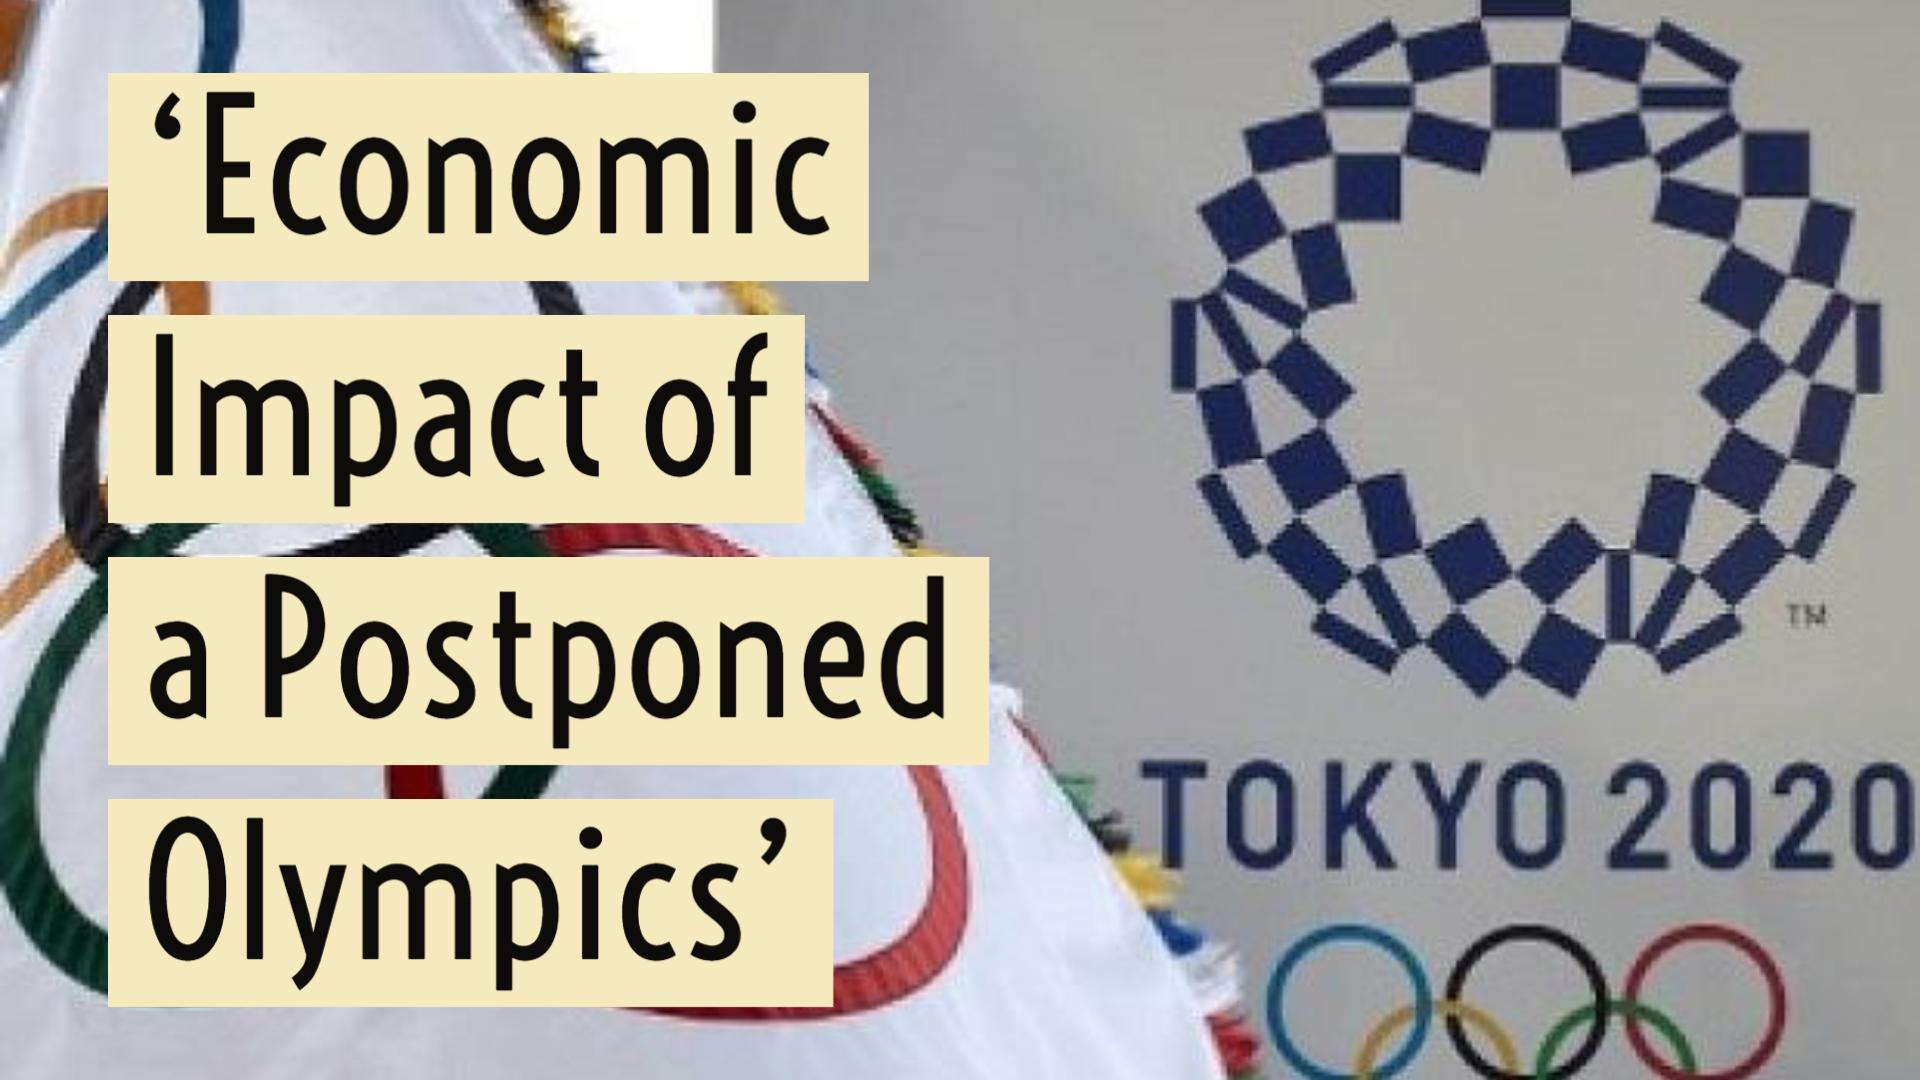 Tokyo Olympics postponed, the economic toll